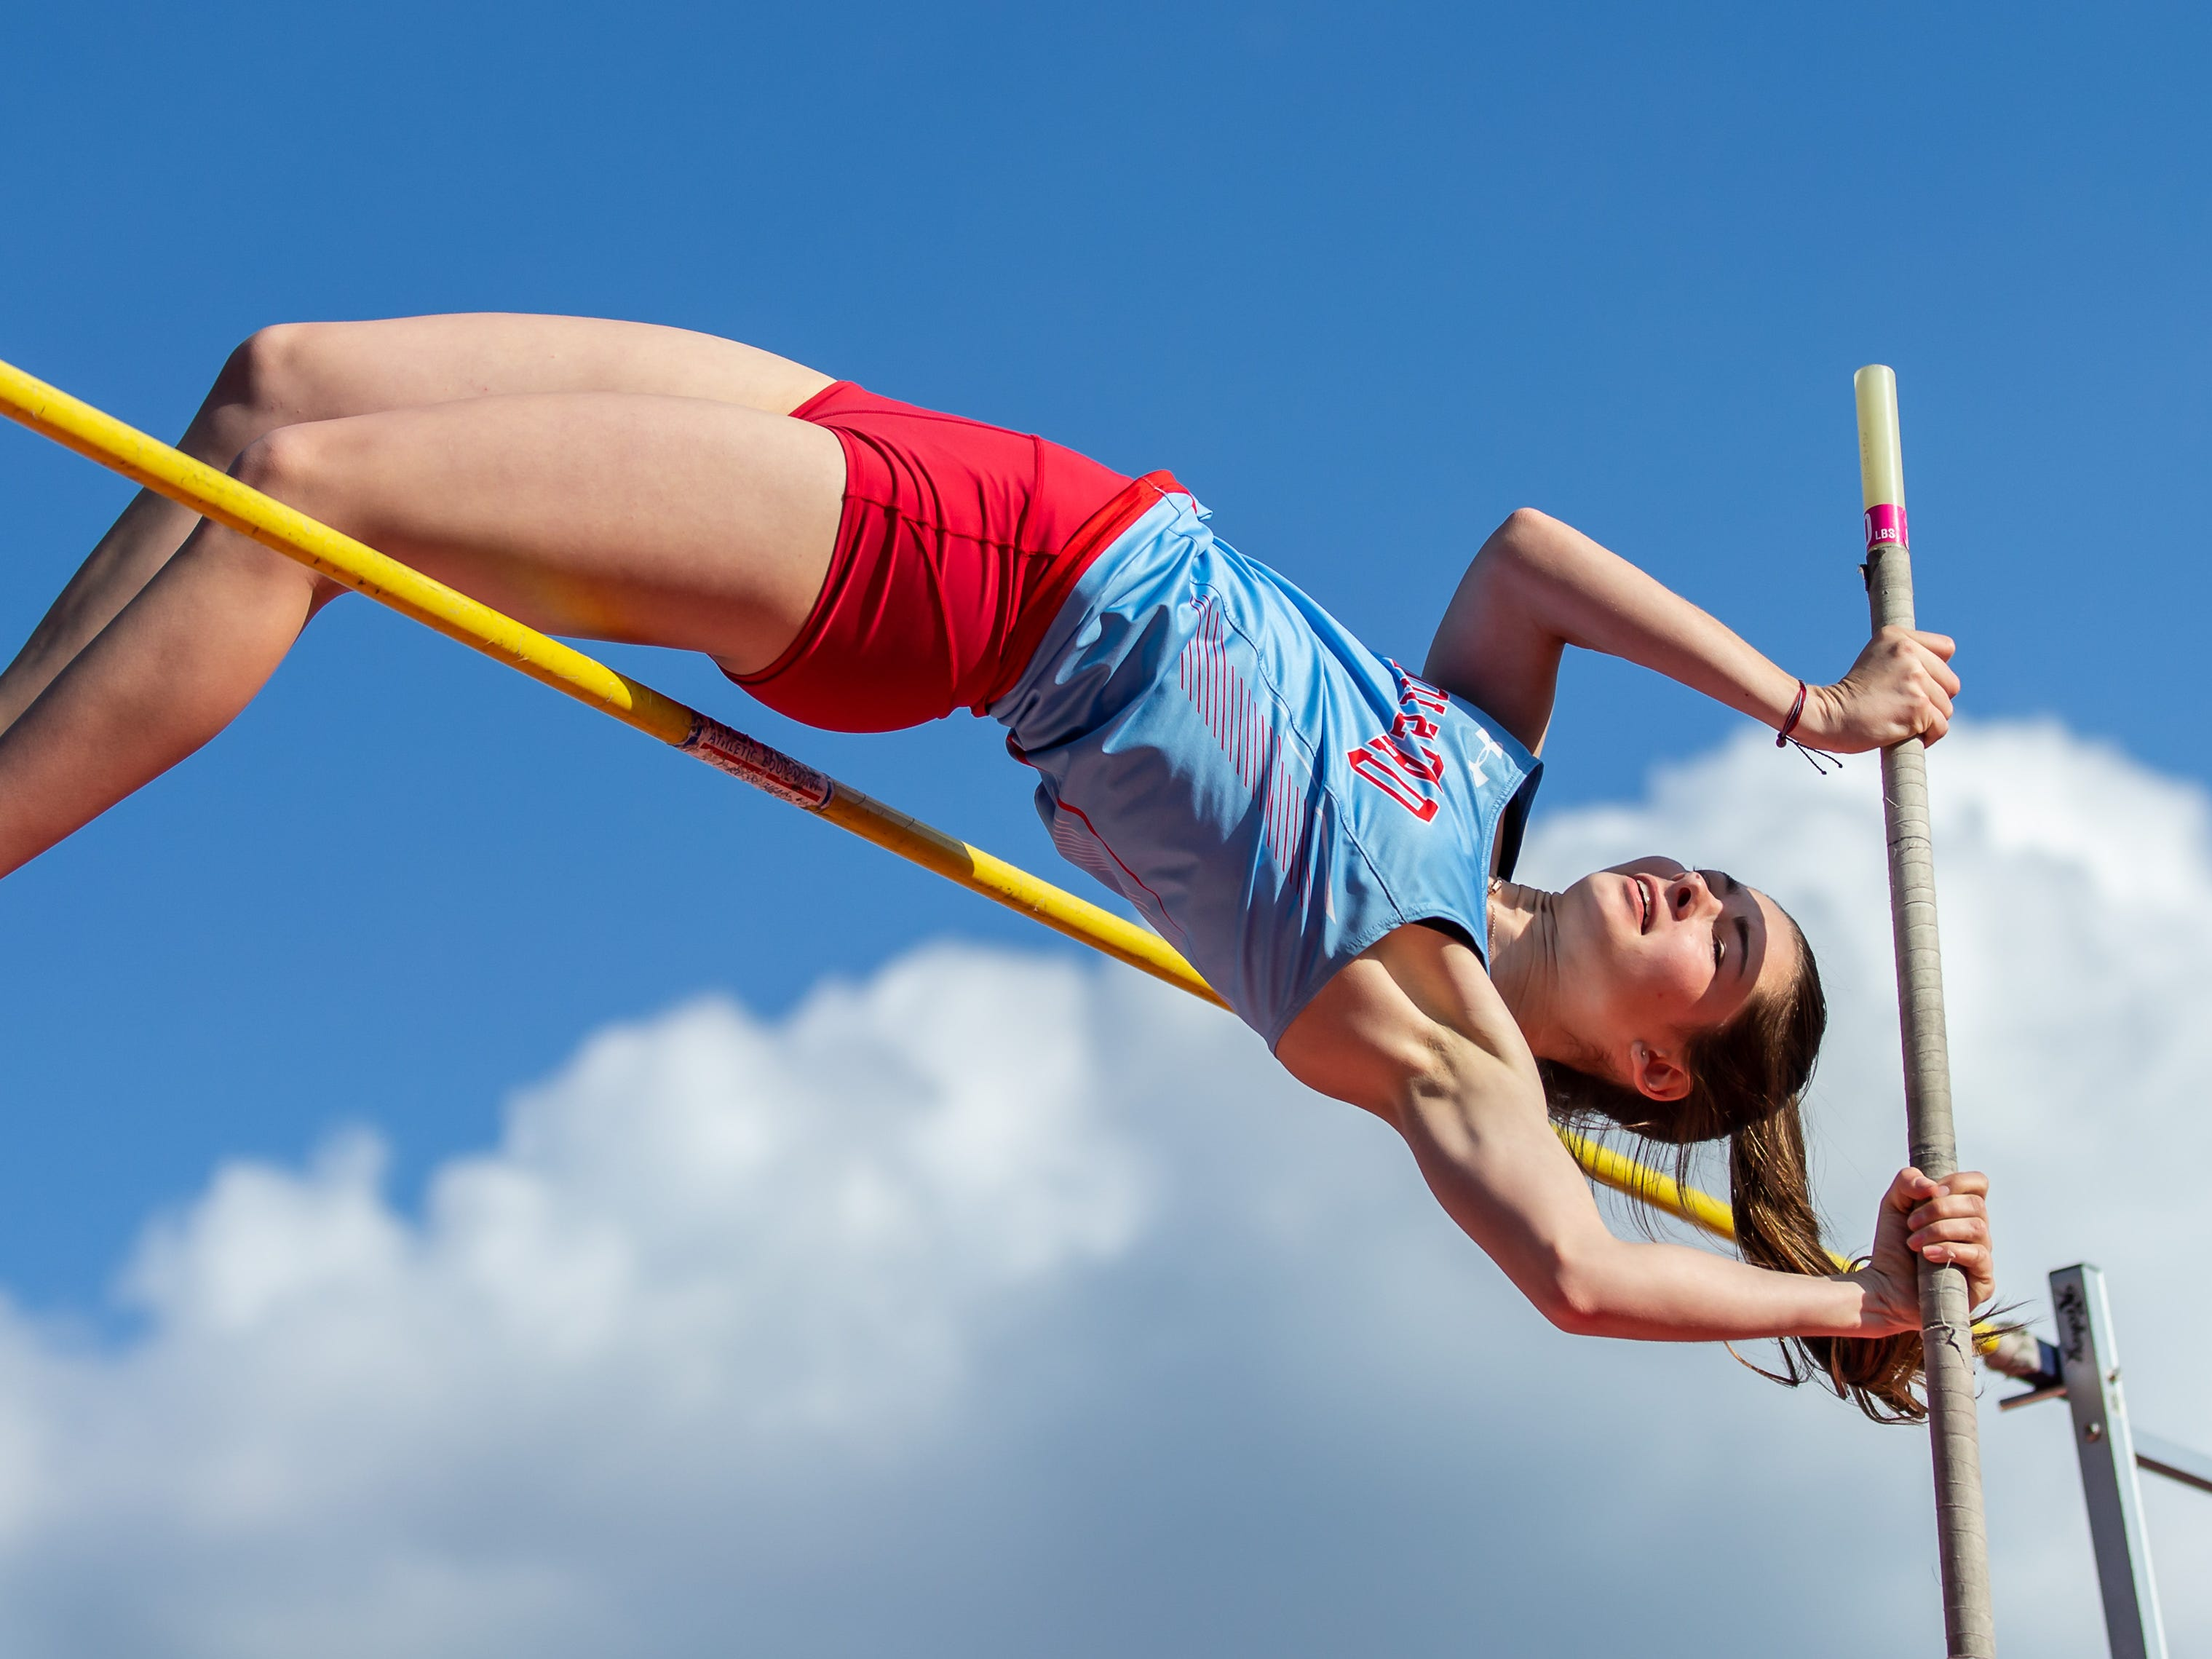 Arrowhead freshman Sophie Herriot competes in the pole vault at the 2019 Myrhum Invitational track and field meet in Hartland on Saturday, May 4.